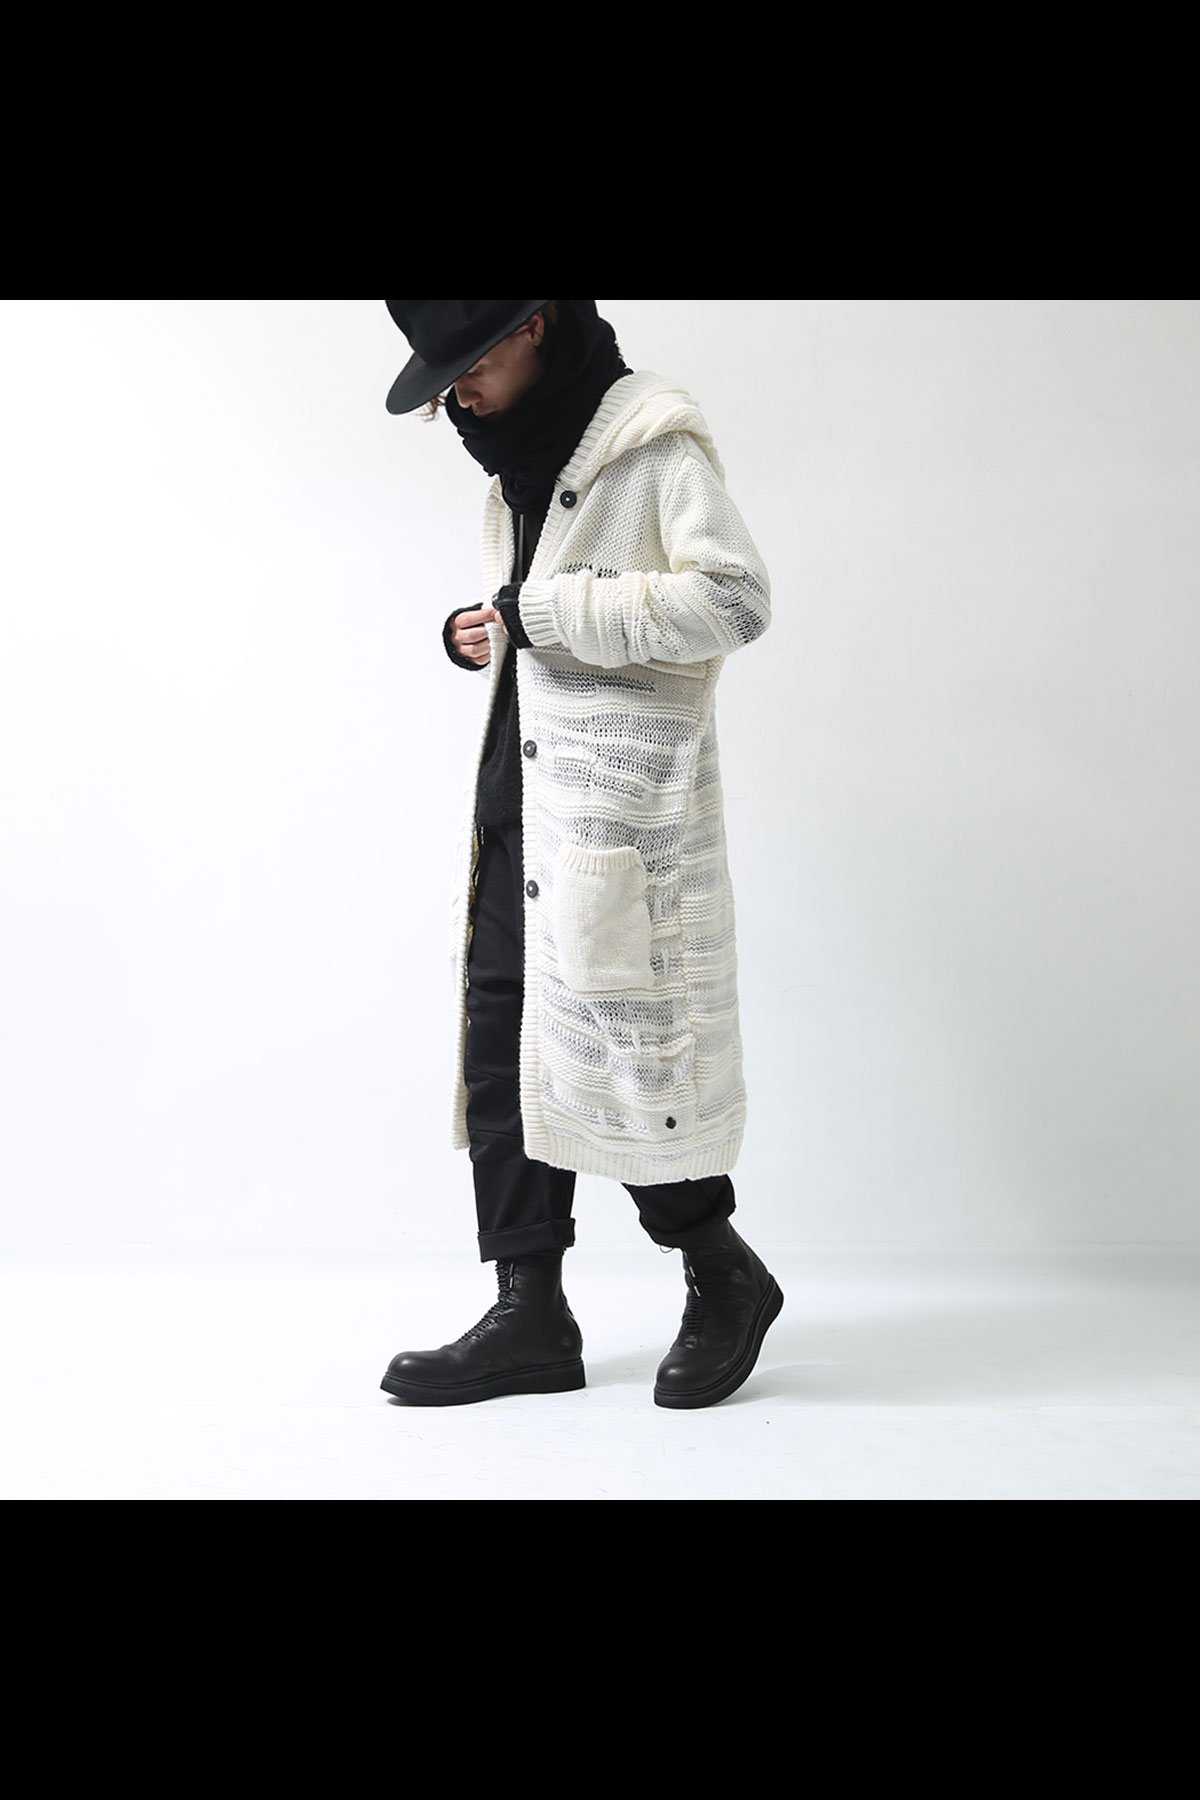 <img class='new_mark_img1' src='https://img.shop-pro.jp/img/new/icons8.gif' style='border:none;display:inline;margin:0px;padding:0px;width:auto;' />MIXED RIB KNIT HOODIE M02_BIANCO